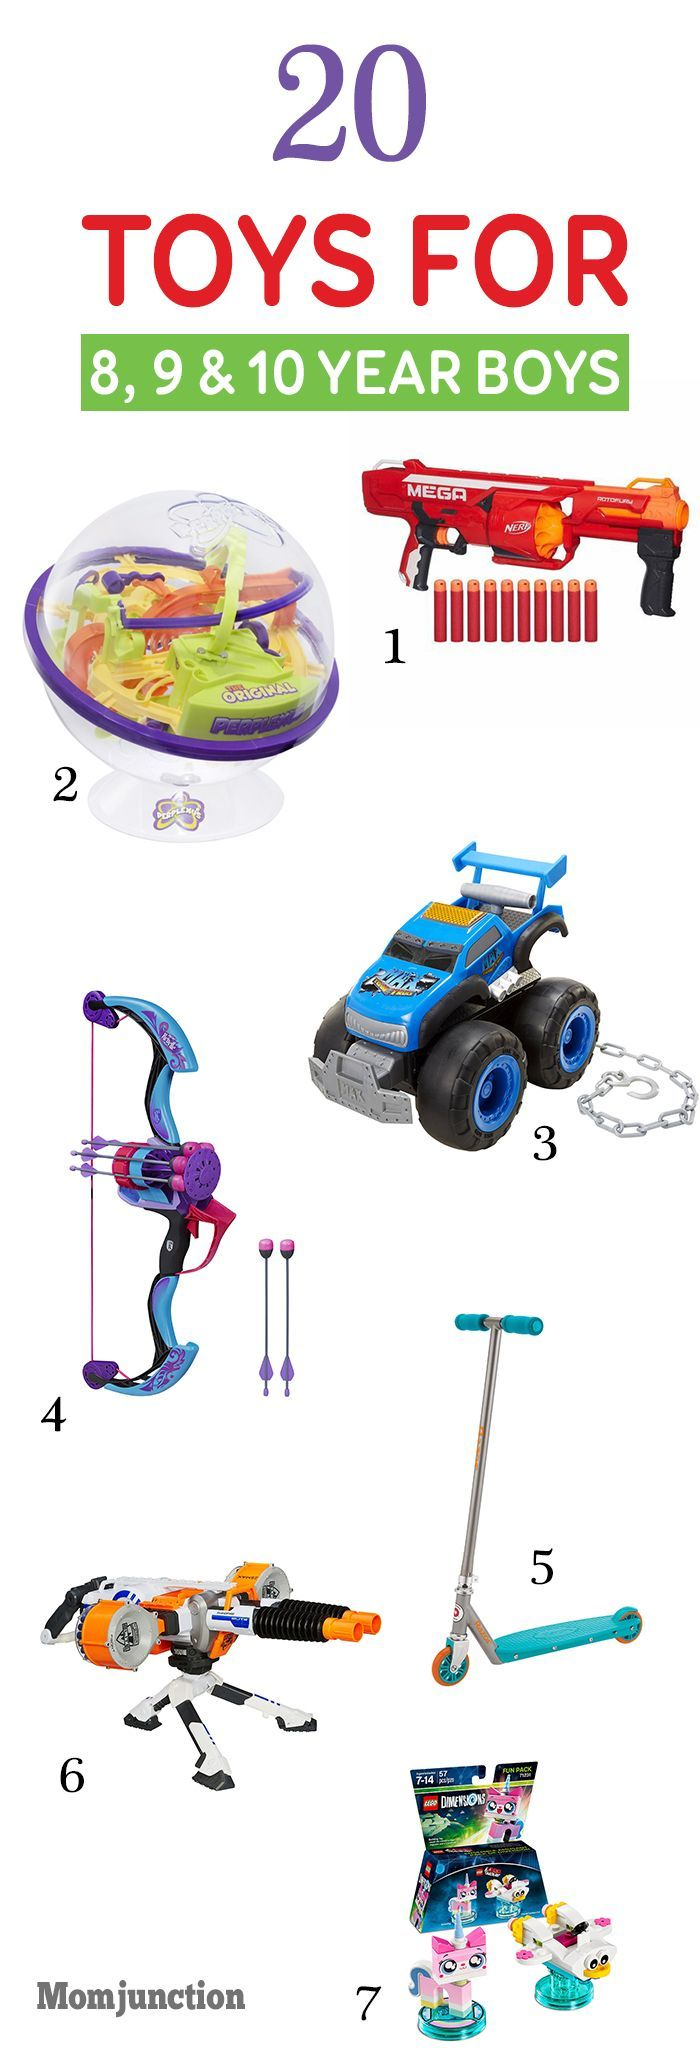 Best Toys For 8 Year Boys : Best images about toys for year old girls on